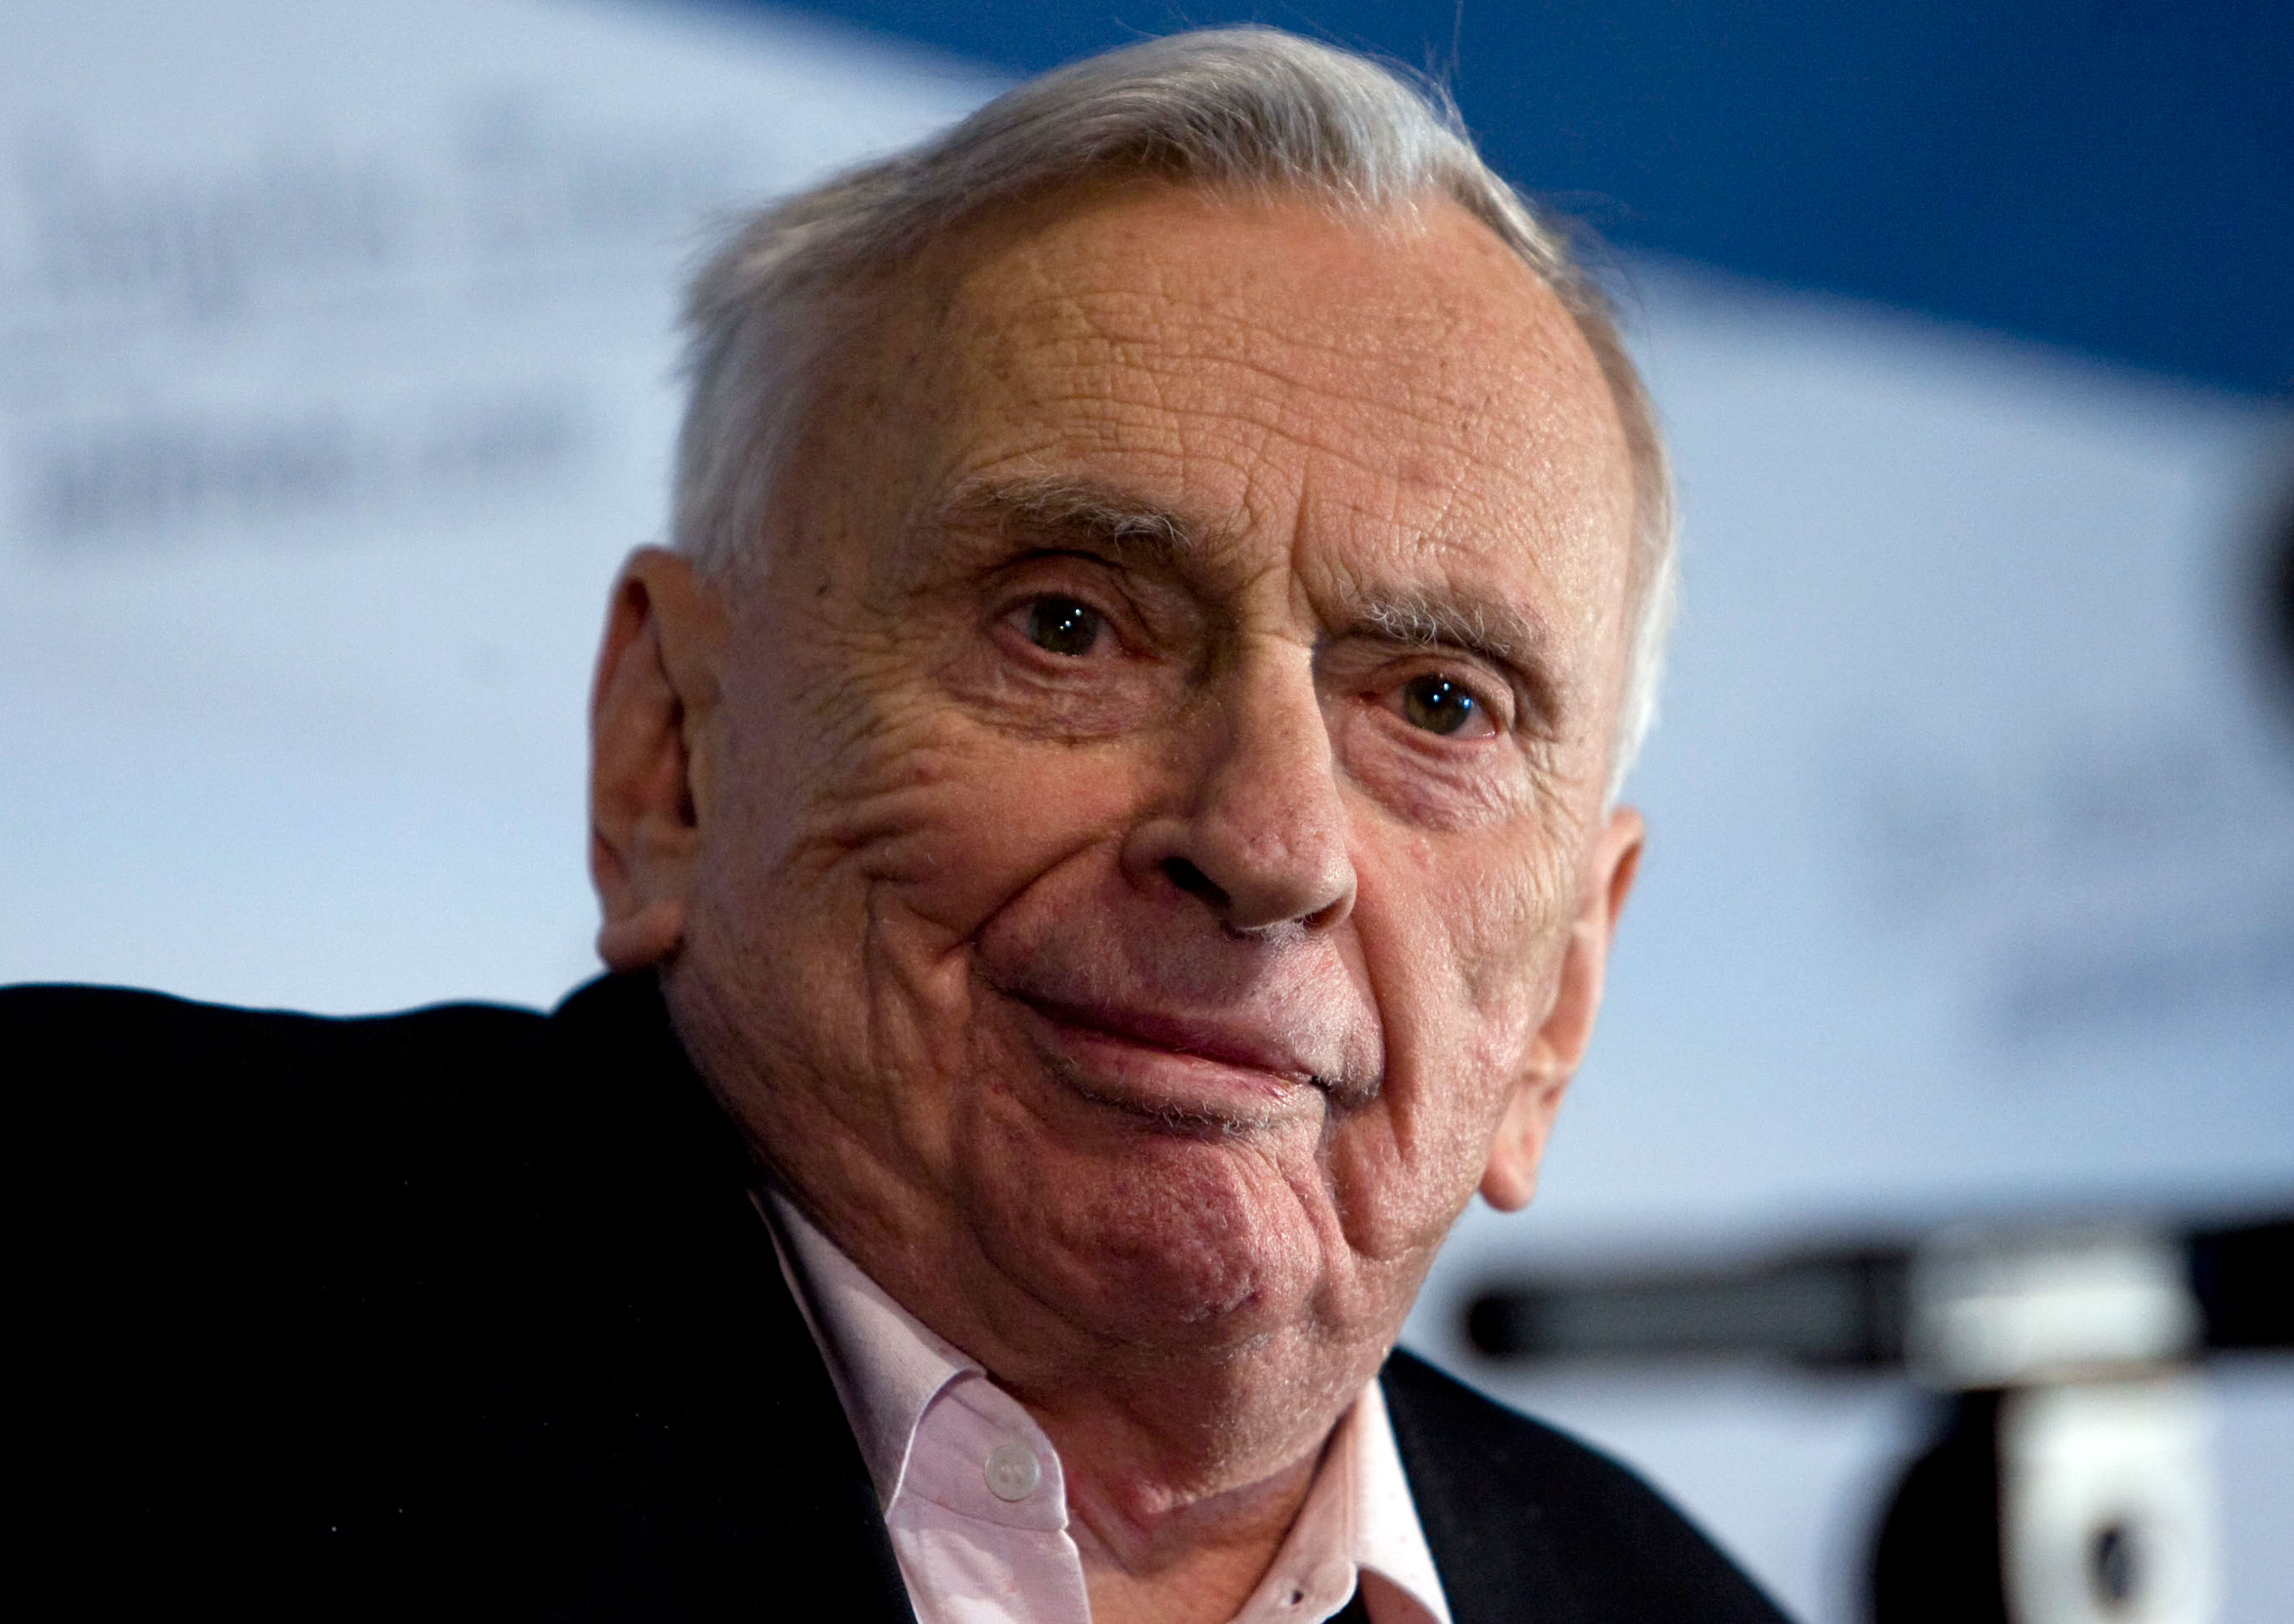 Writer Gore Vidal, recalling the words of his grandfather